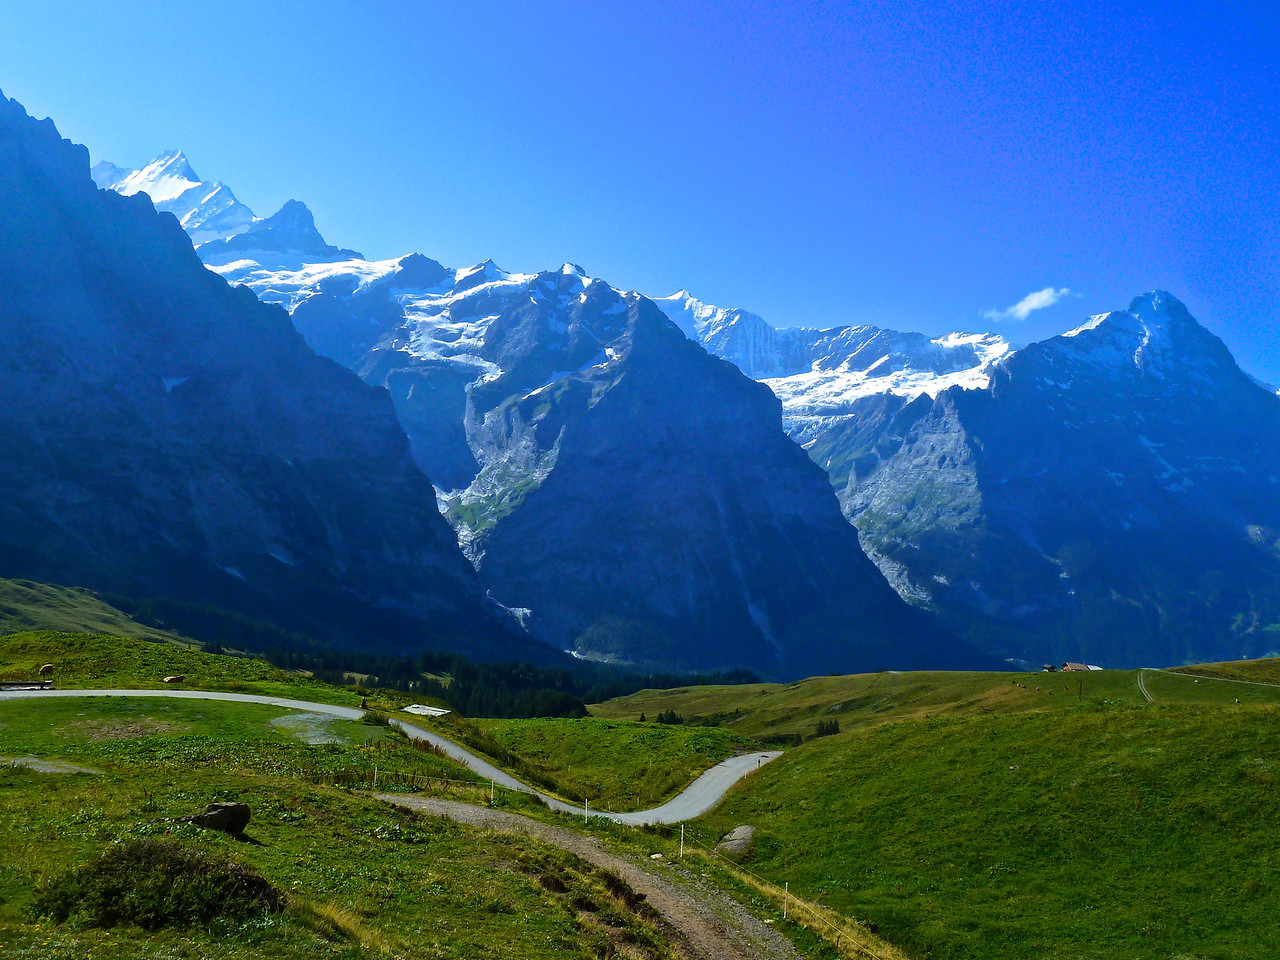 Eiger on the right, Schreckhorn in the middle, beginning of Wetterhorn on the left!